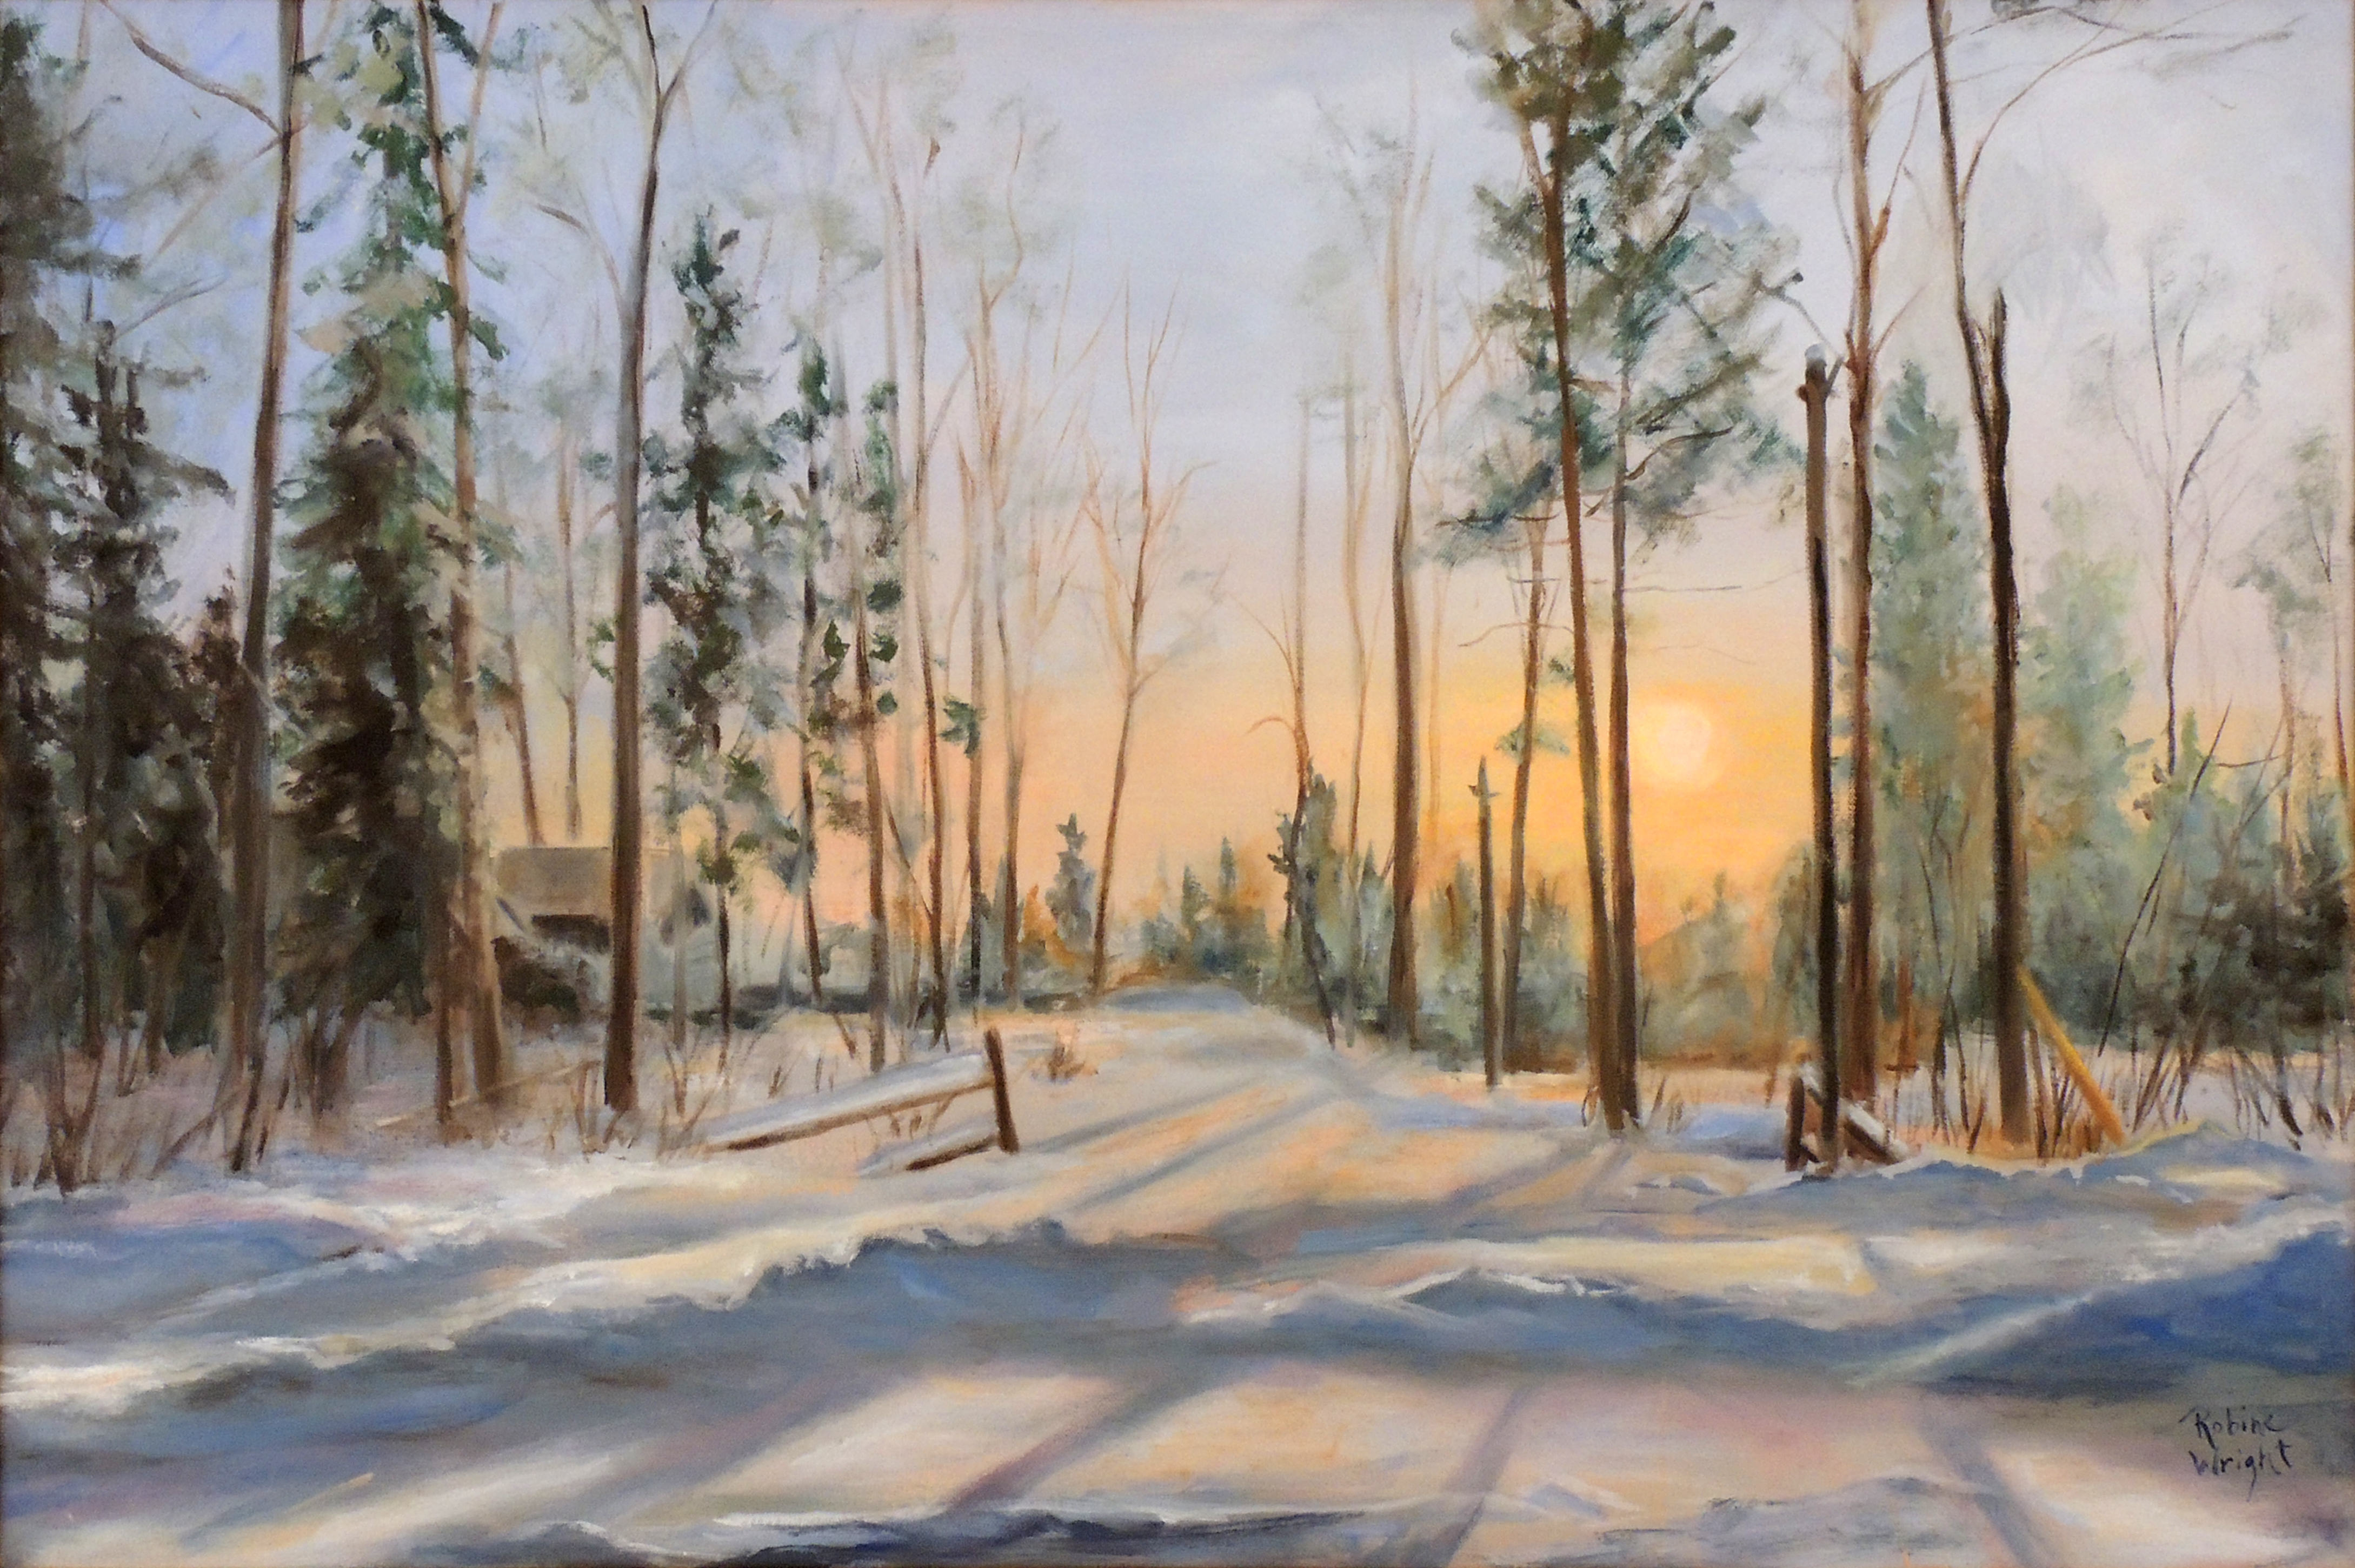 Robine Wright | WINTER MORNING AT THE CABIN | Oil